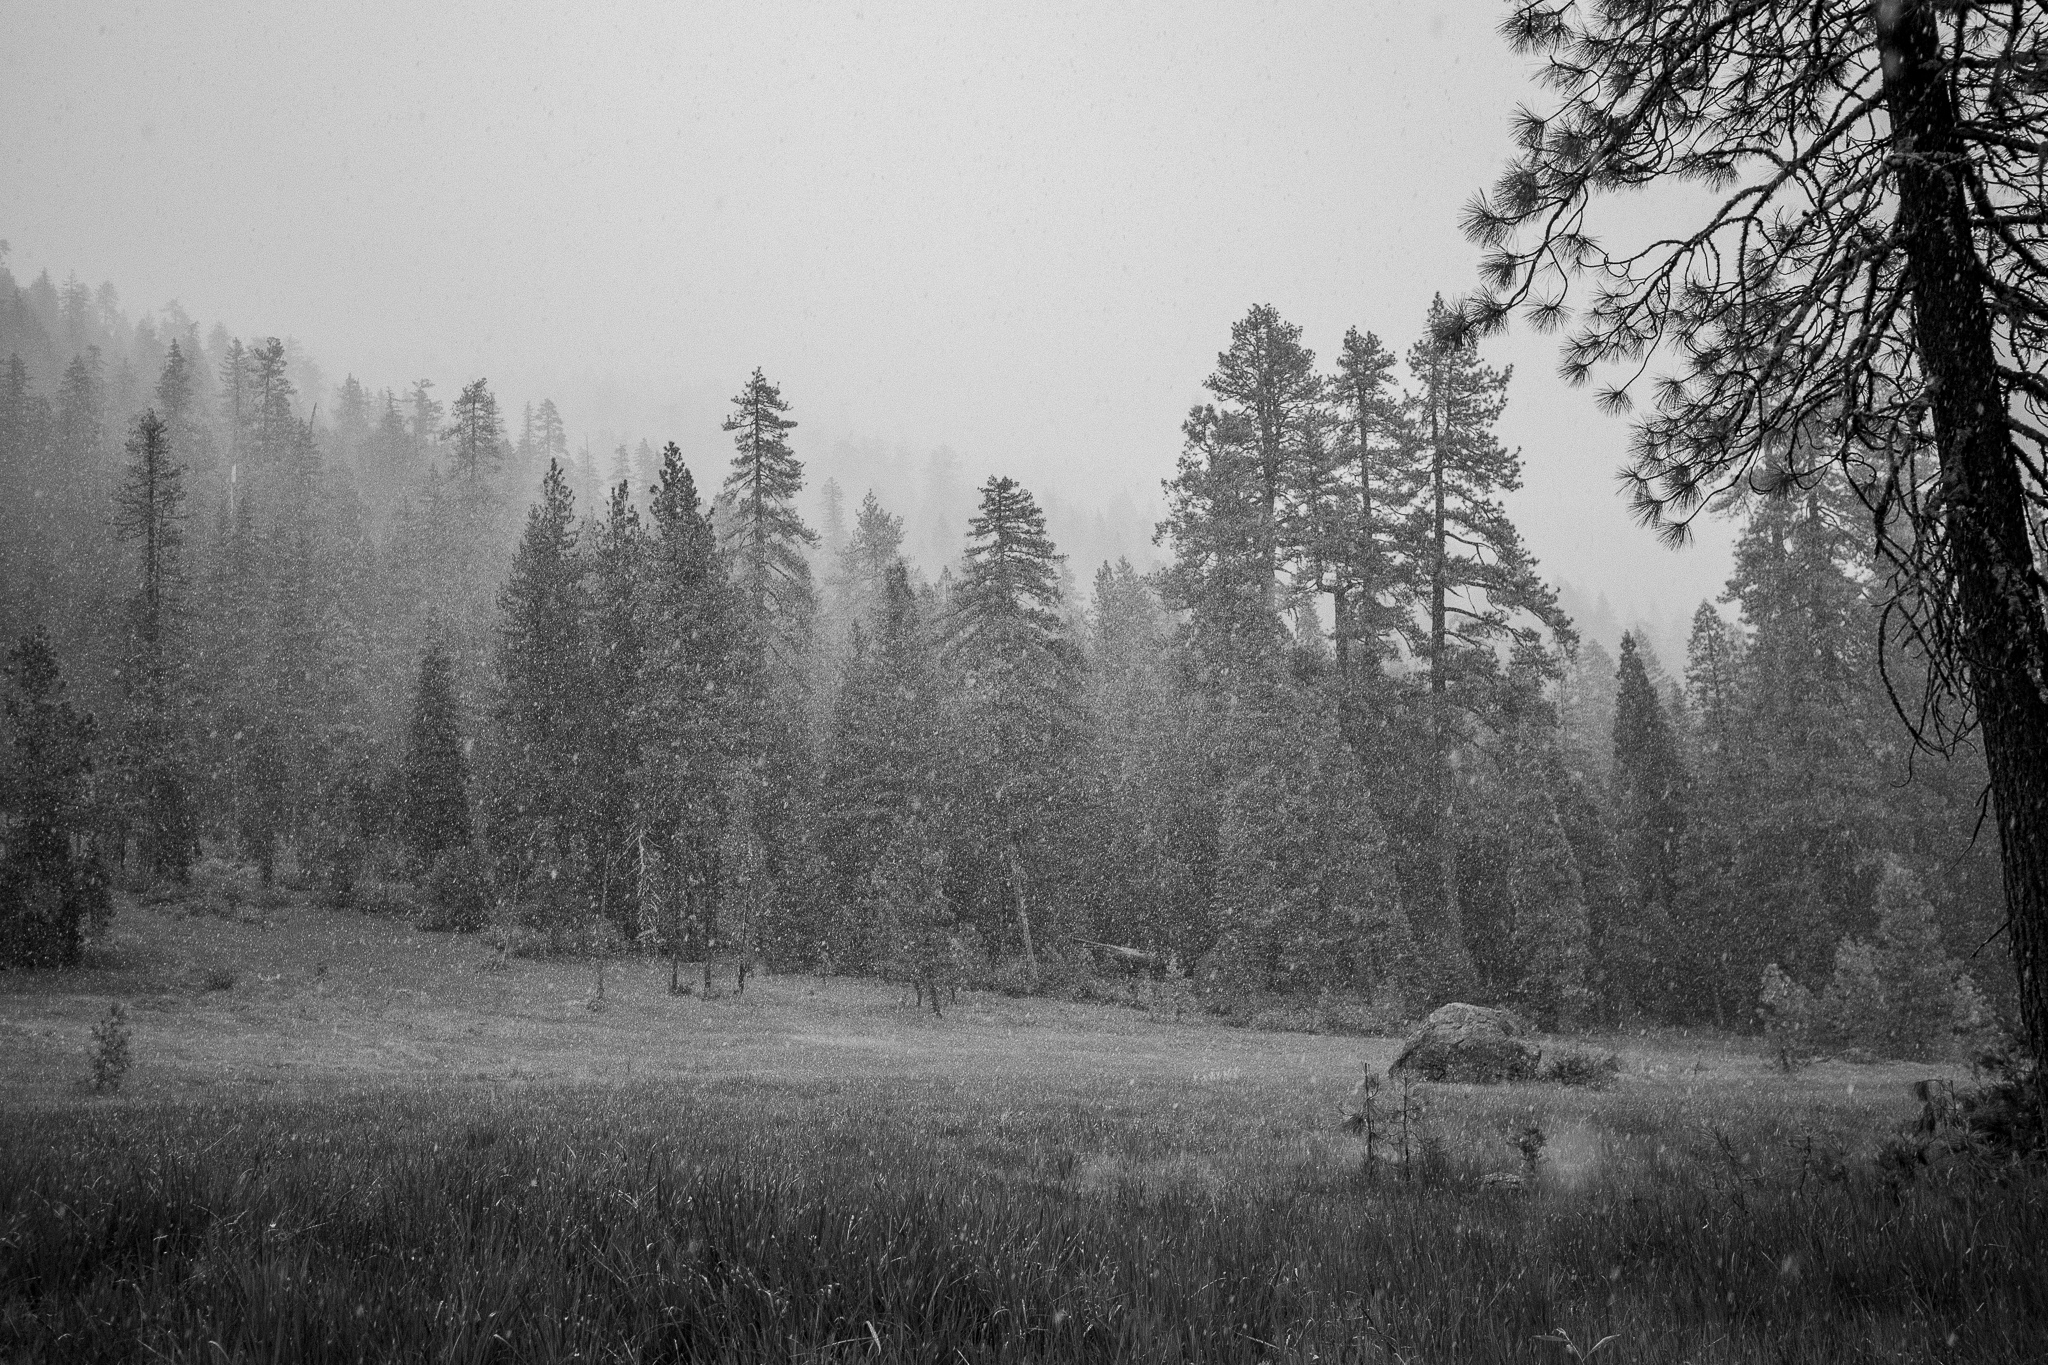 Unexpected snowstorm in June in the Trinity Alps.